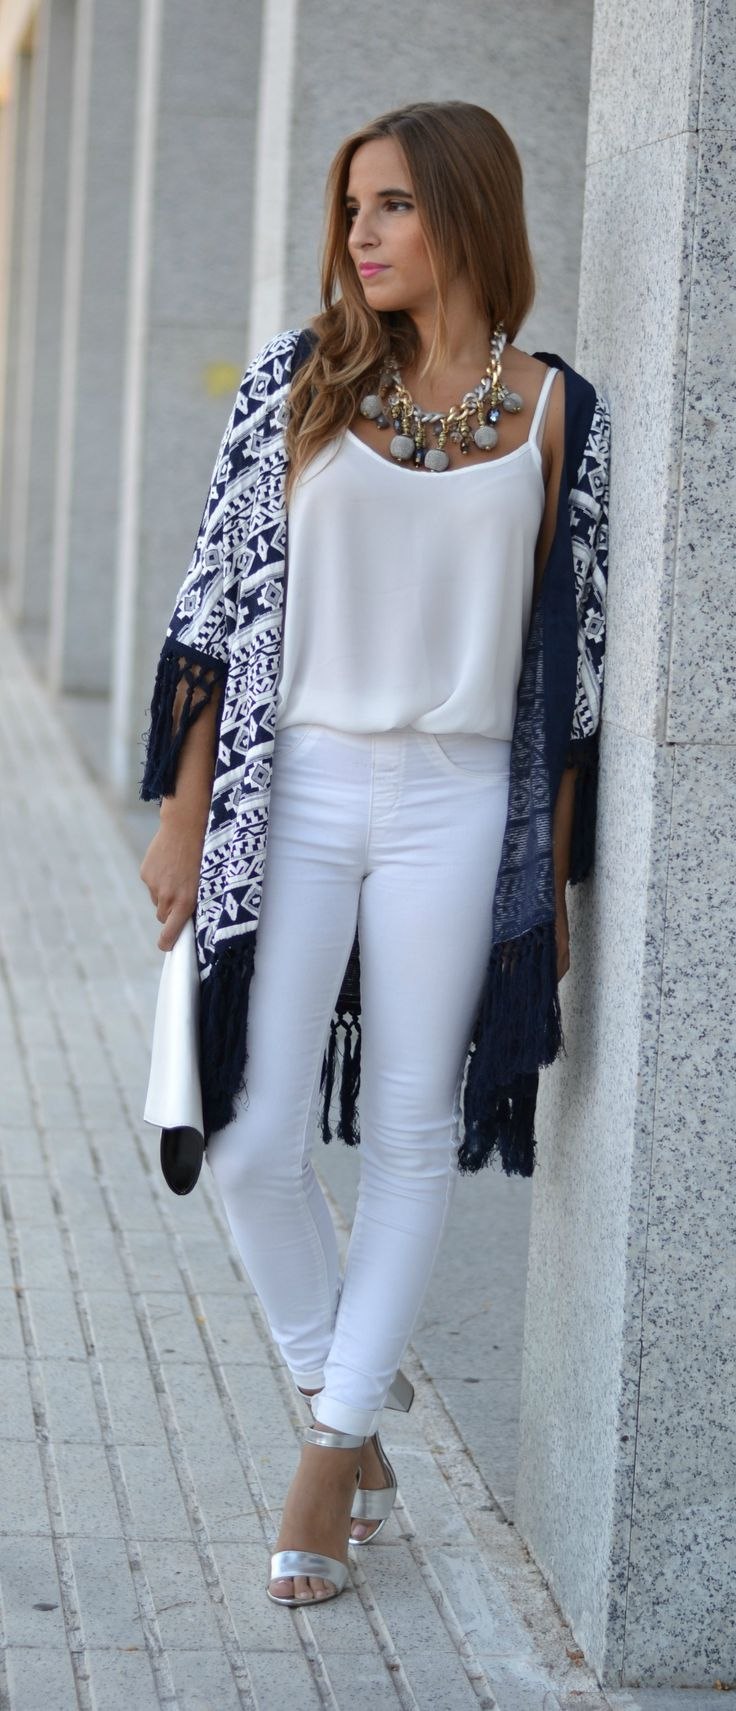 Blogger Kimono Style Outfit Total Look www.lareinadellowcost.com